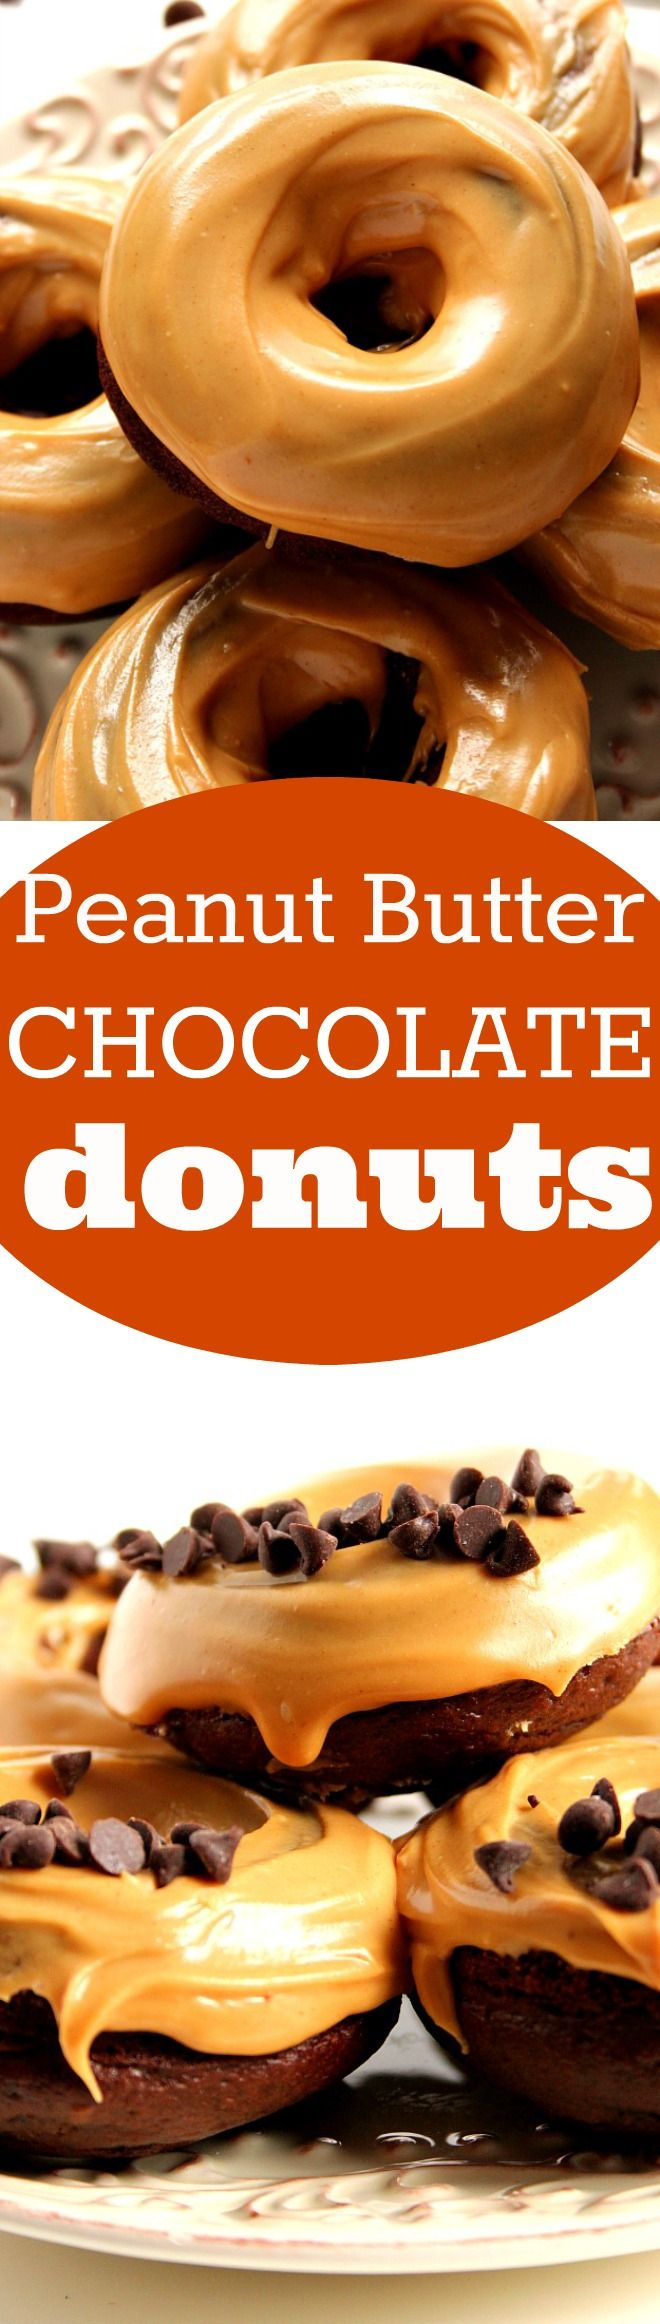 Quick and easy peanut butter recipes